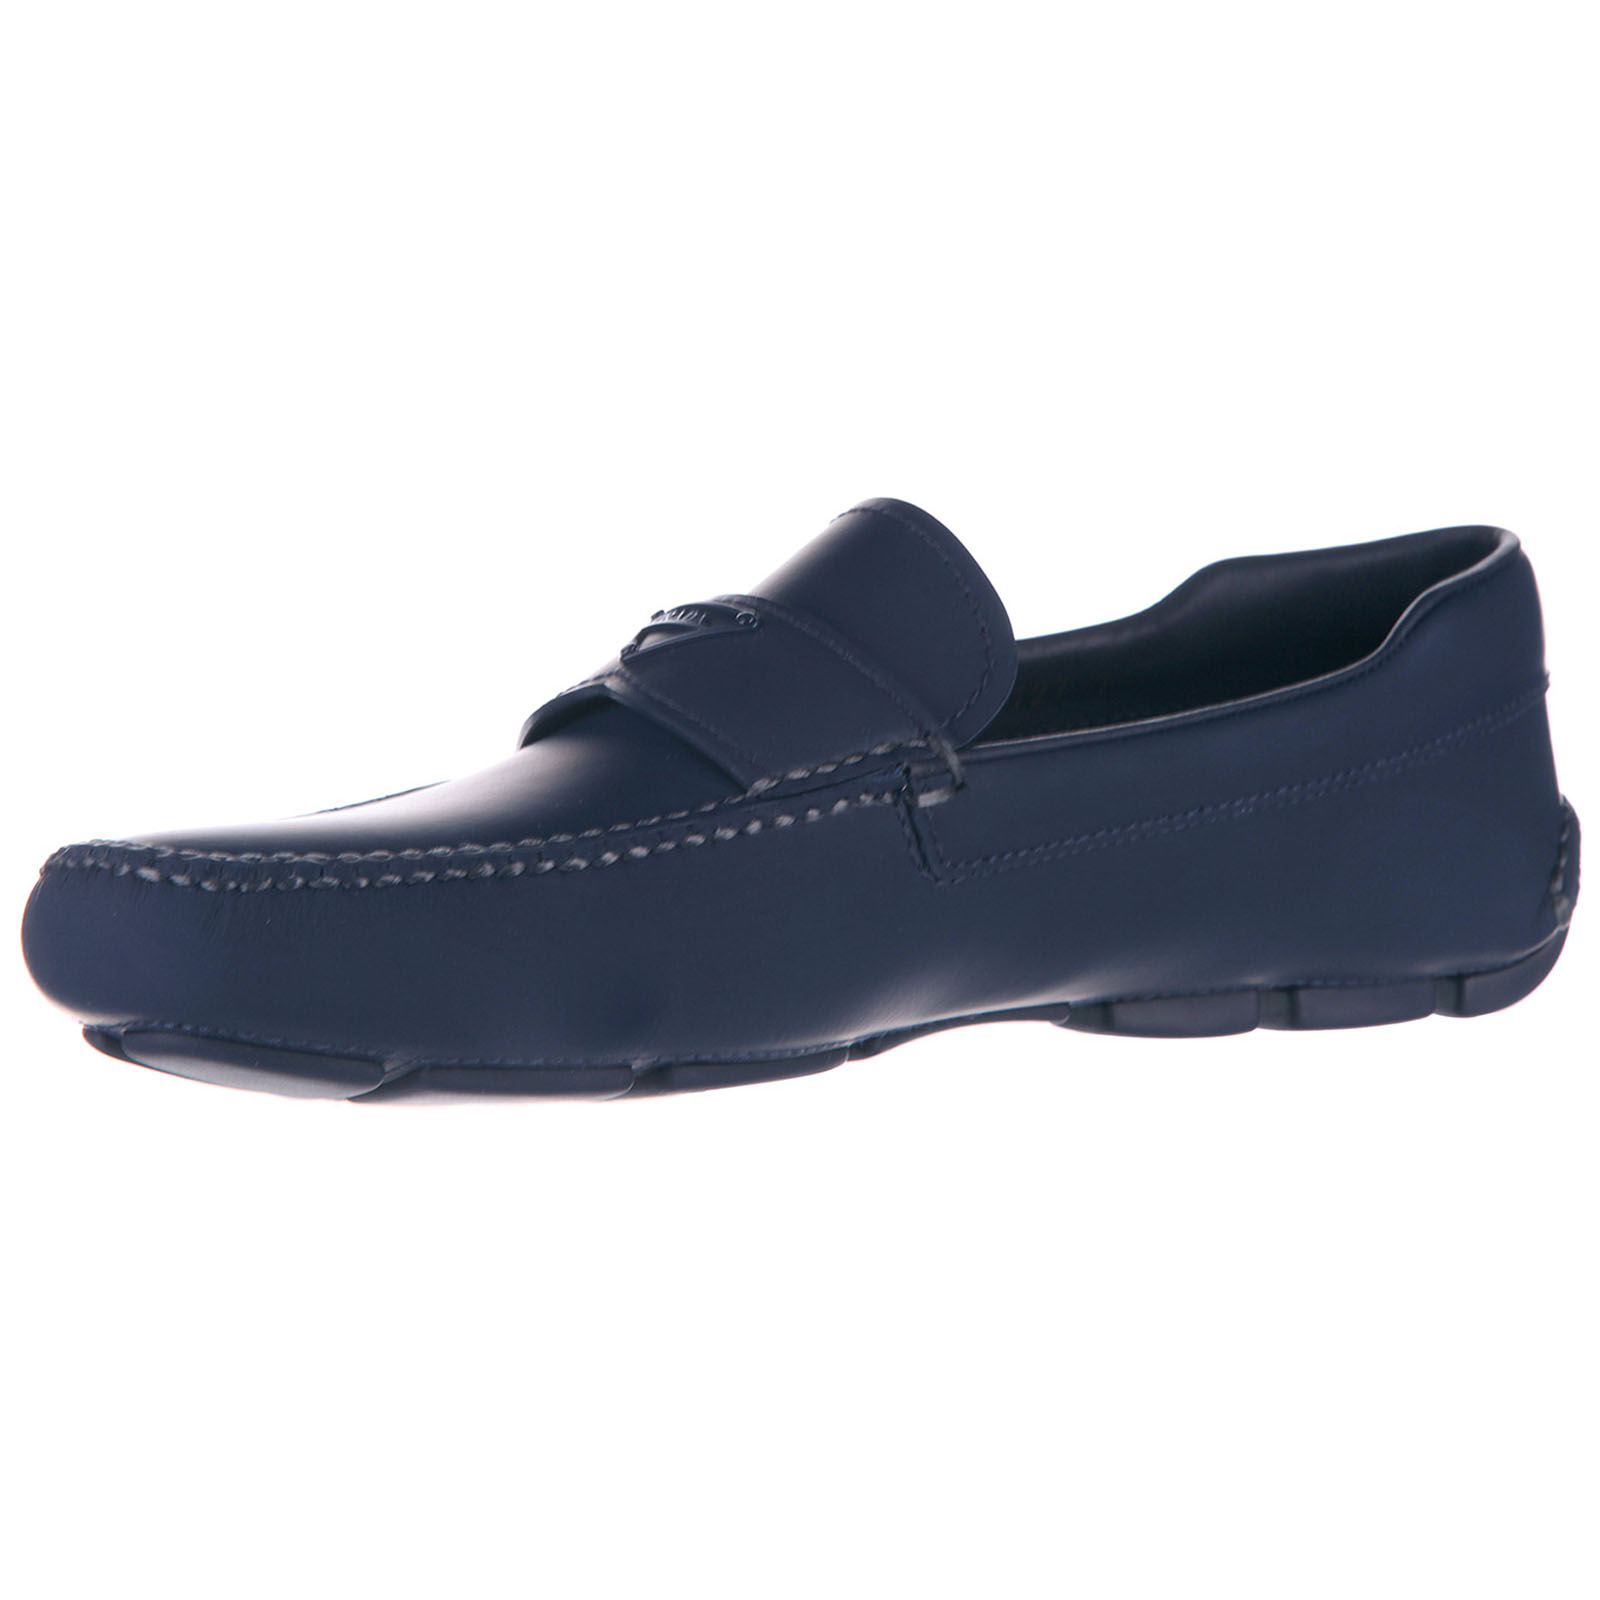 Men's leather loafers moccasins  vit rubber